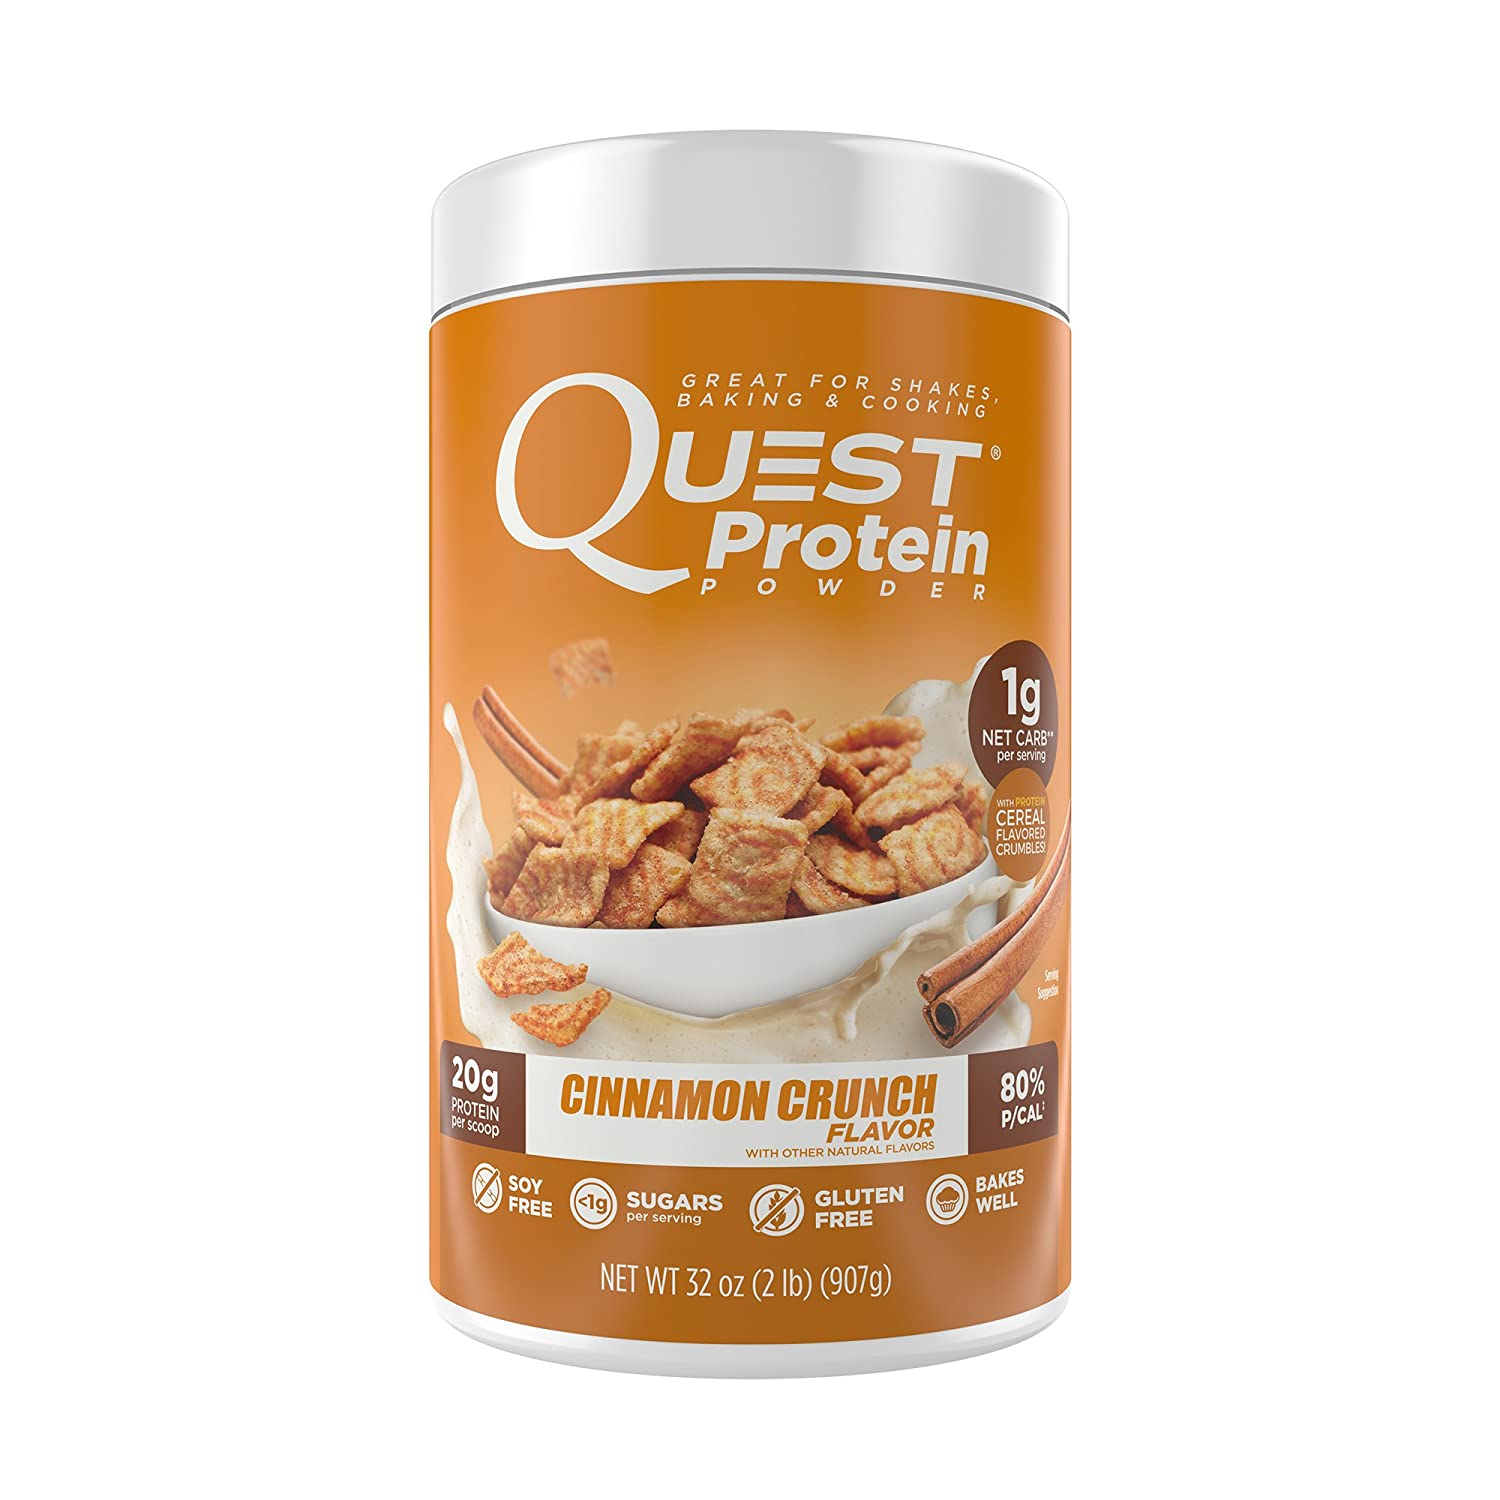 Quest Nutrition Cinnamon Crunch Protein Powder, High Protein, Low Carb, Gluten Free, Soy Free, 2lb Tub